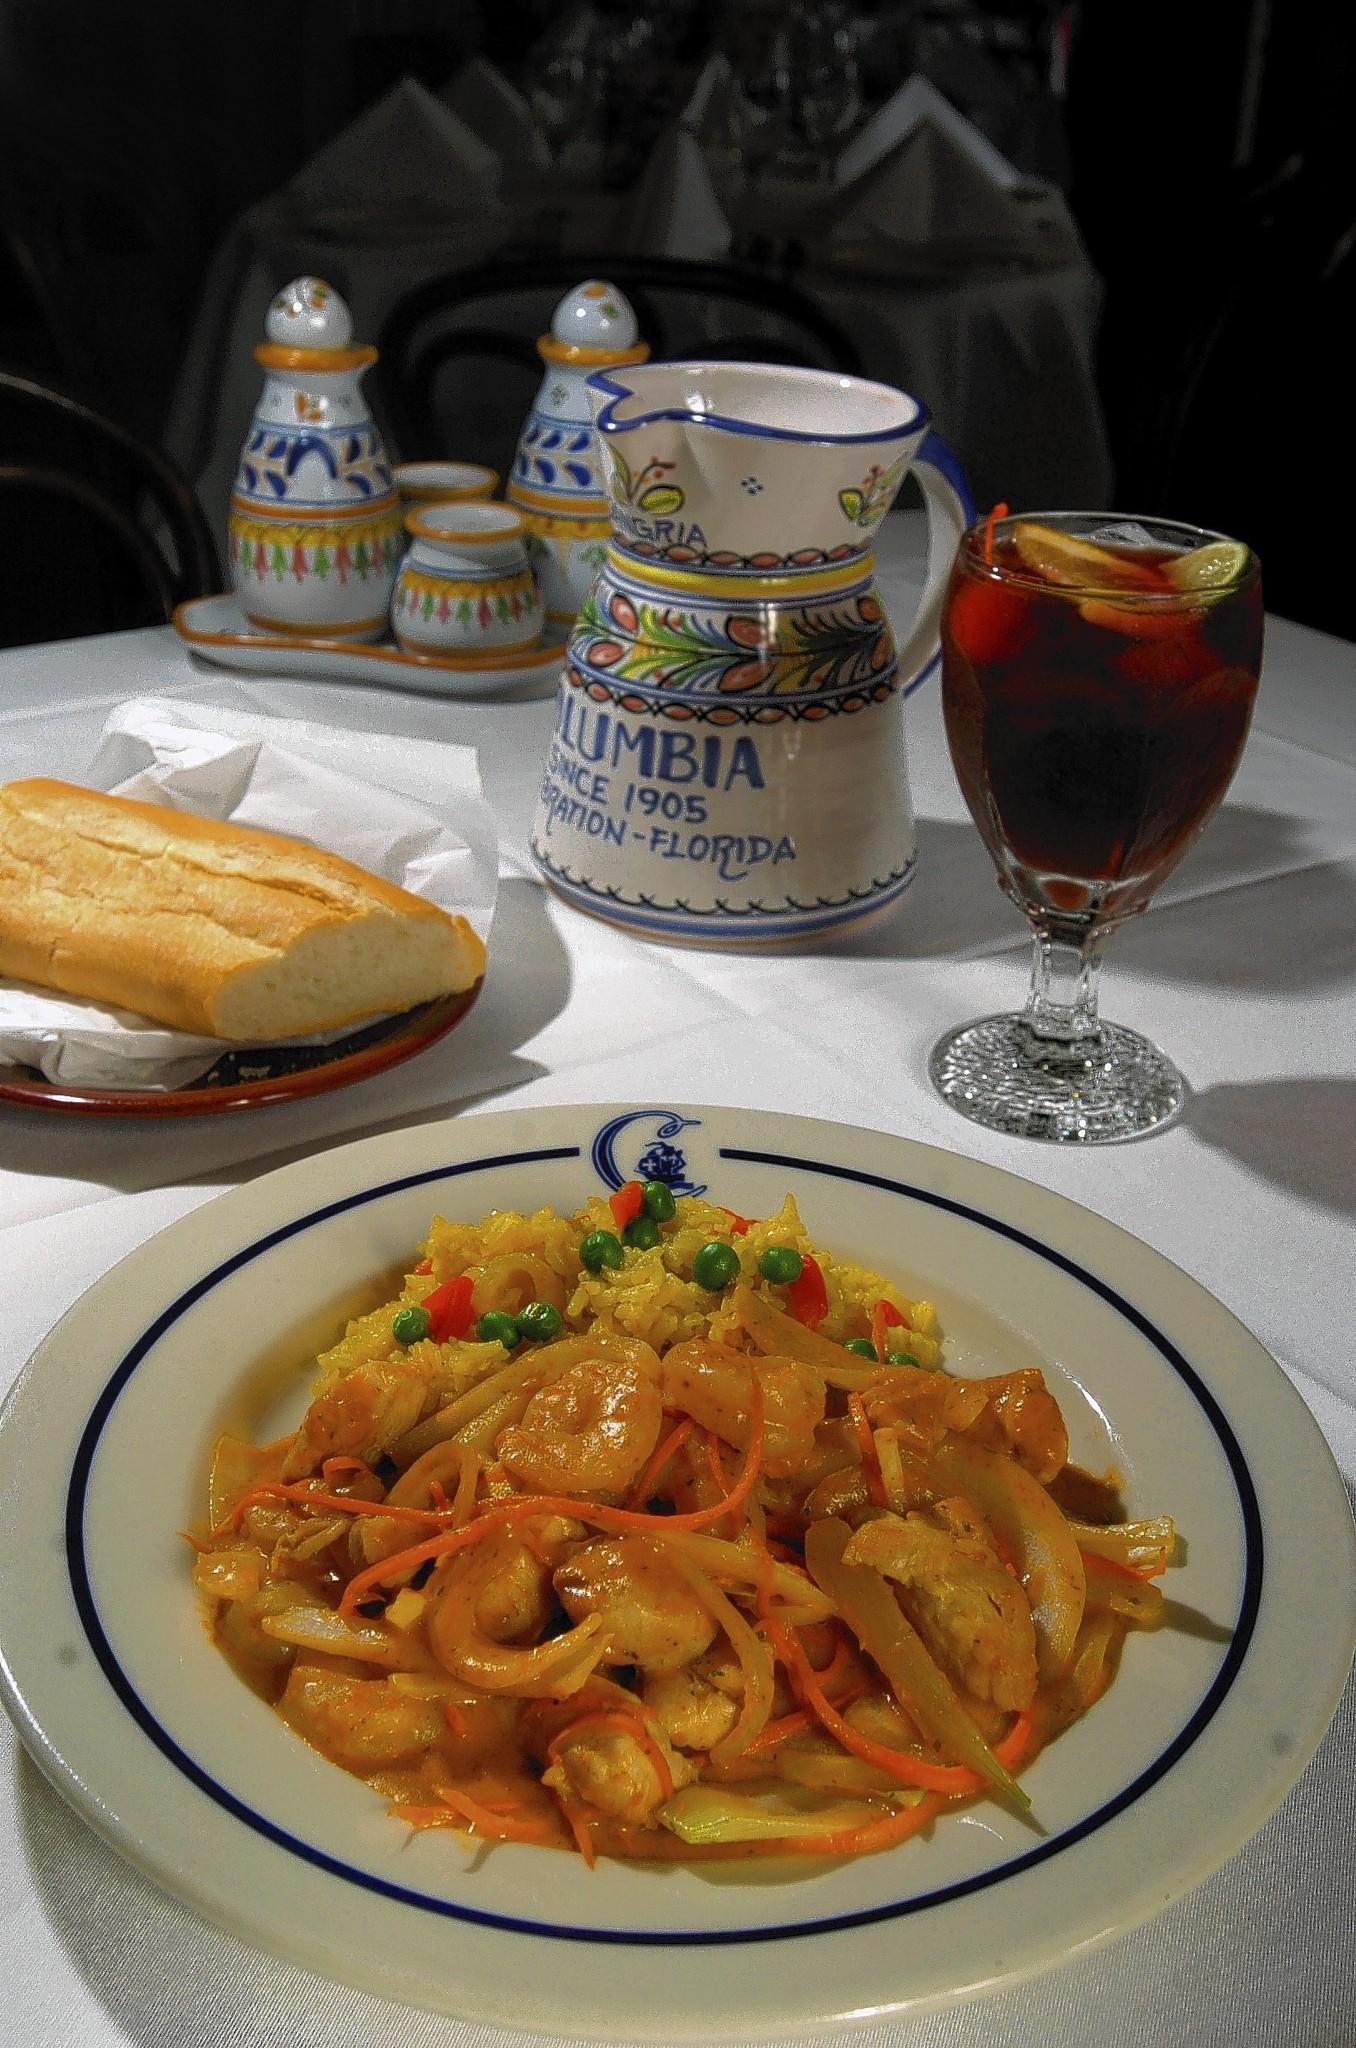 The Columbia Restaurant's Chicken & Shrimp Barcelona is a tasty melange, with a rich Corunesa sauce and cream.